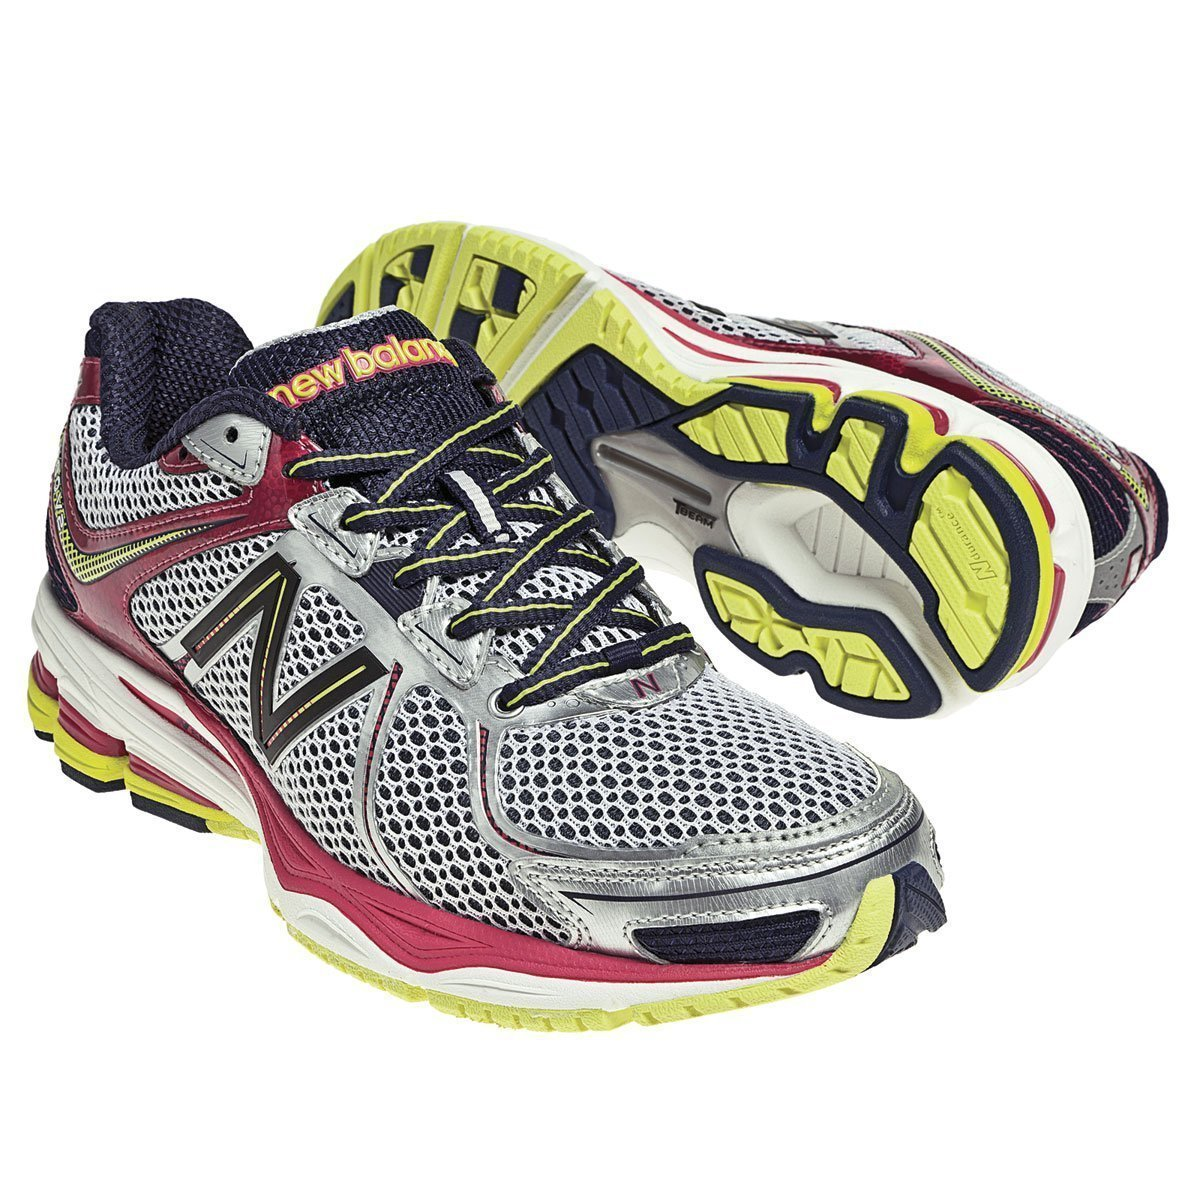 New balance New balance w880sp2 dame fra billigsport24